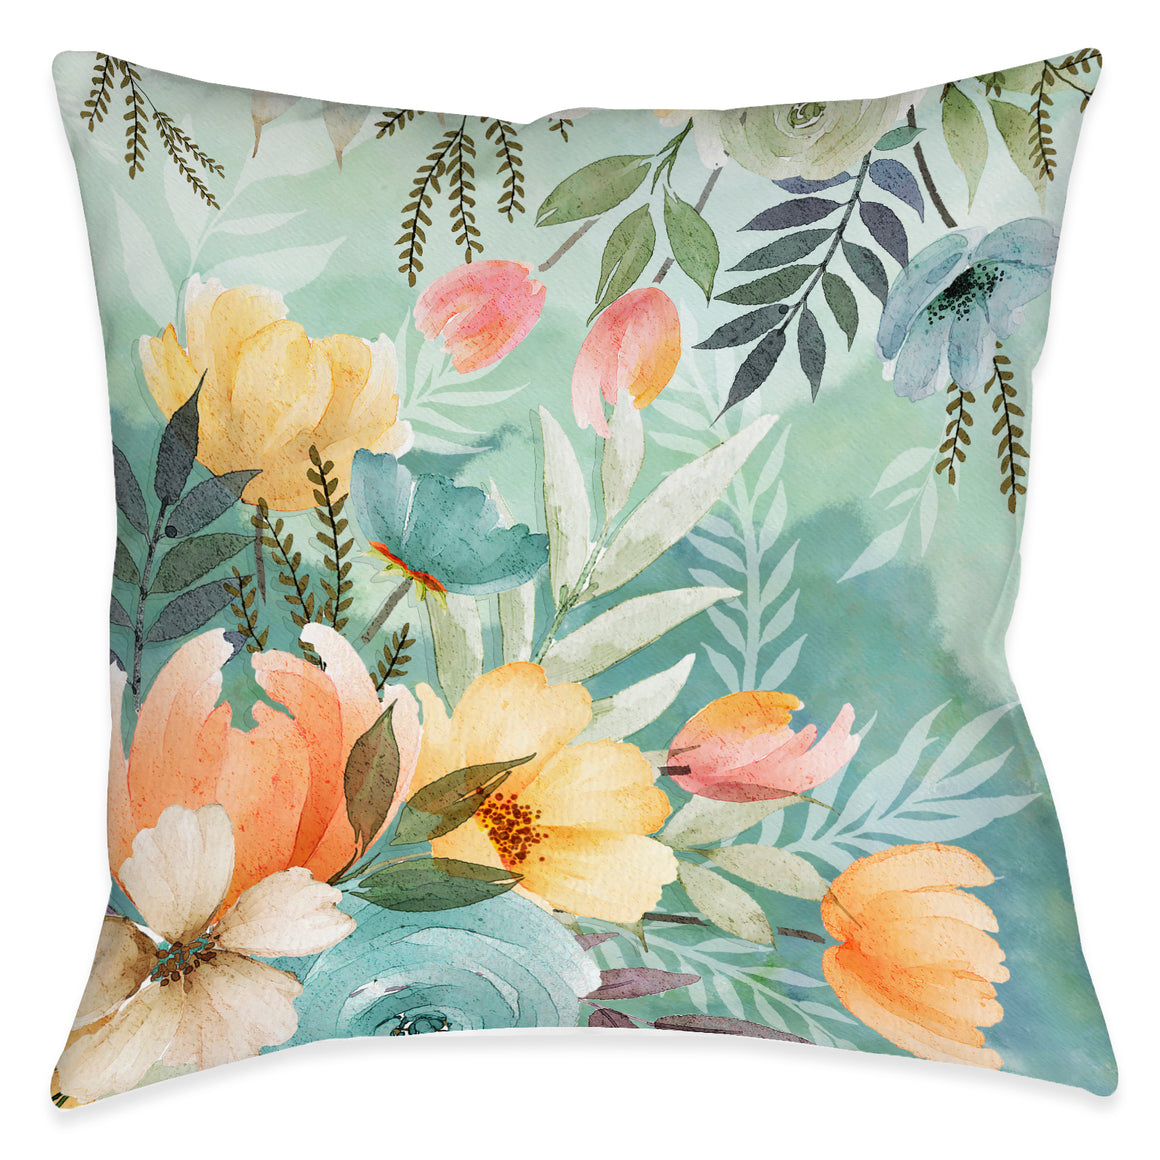 Tranquil Botanicals Outdoor Decorative Pillow